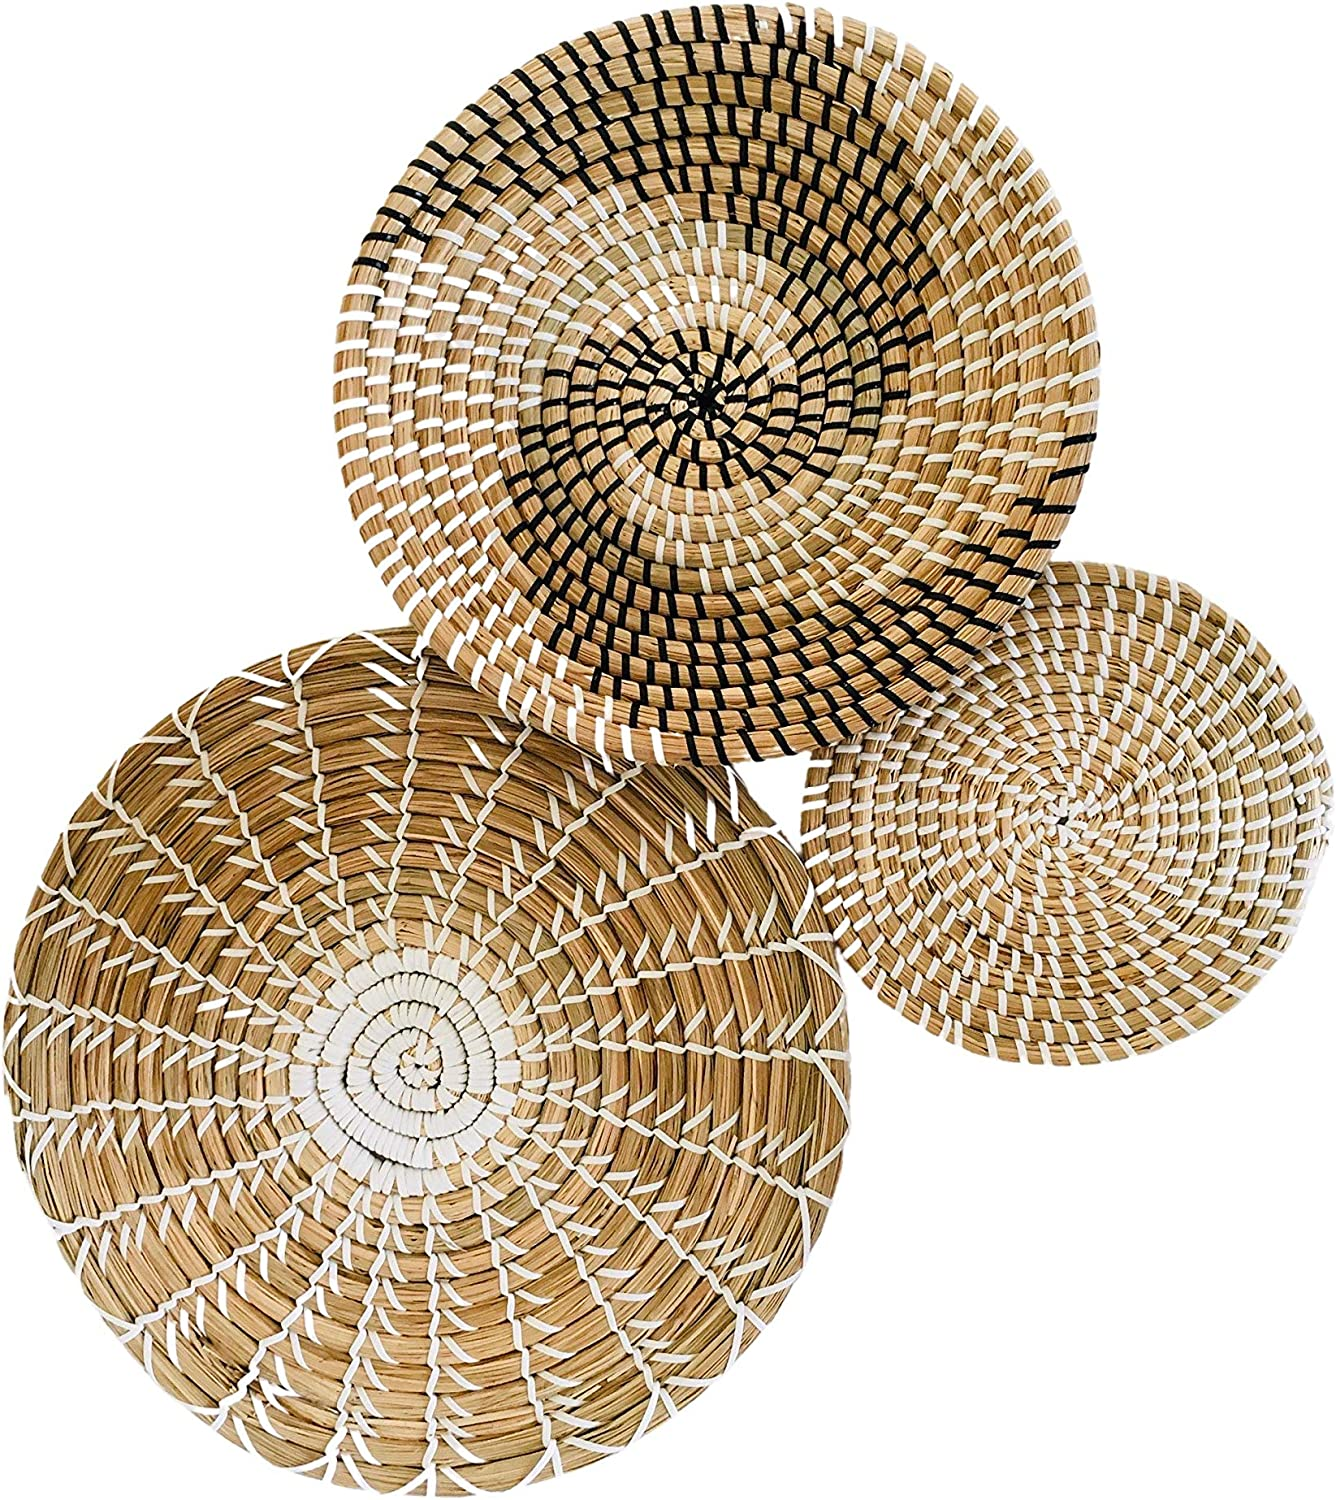 Handmade Hanging Wall Basket Decor - (Set of 3) - Round Woven Basket Wall Decor - Natural Boho Home Decor - Decor for Home Bedroom, Kitchen, Living Room - Decorative Seagrass Bowl and Trays